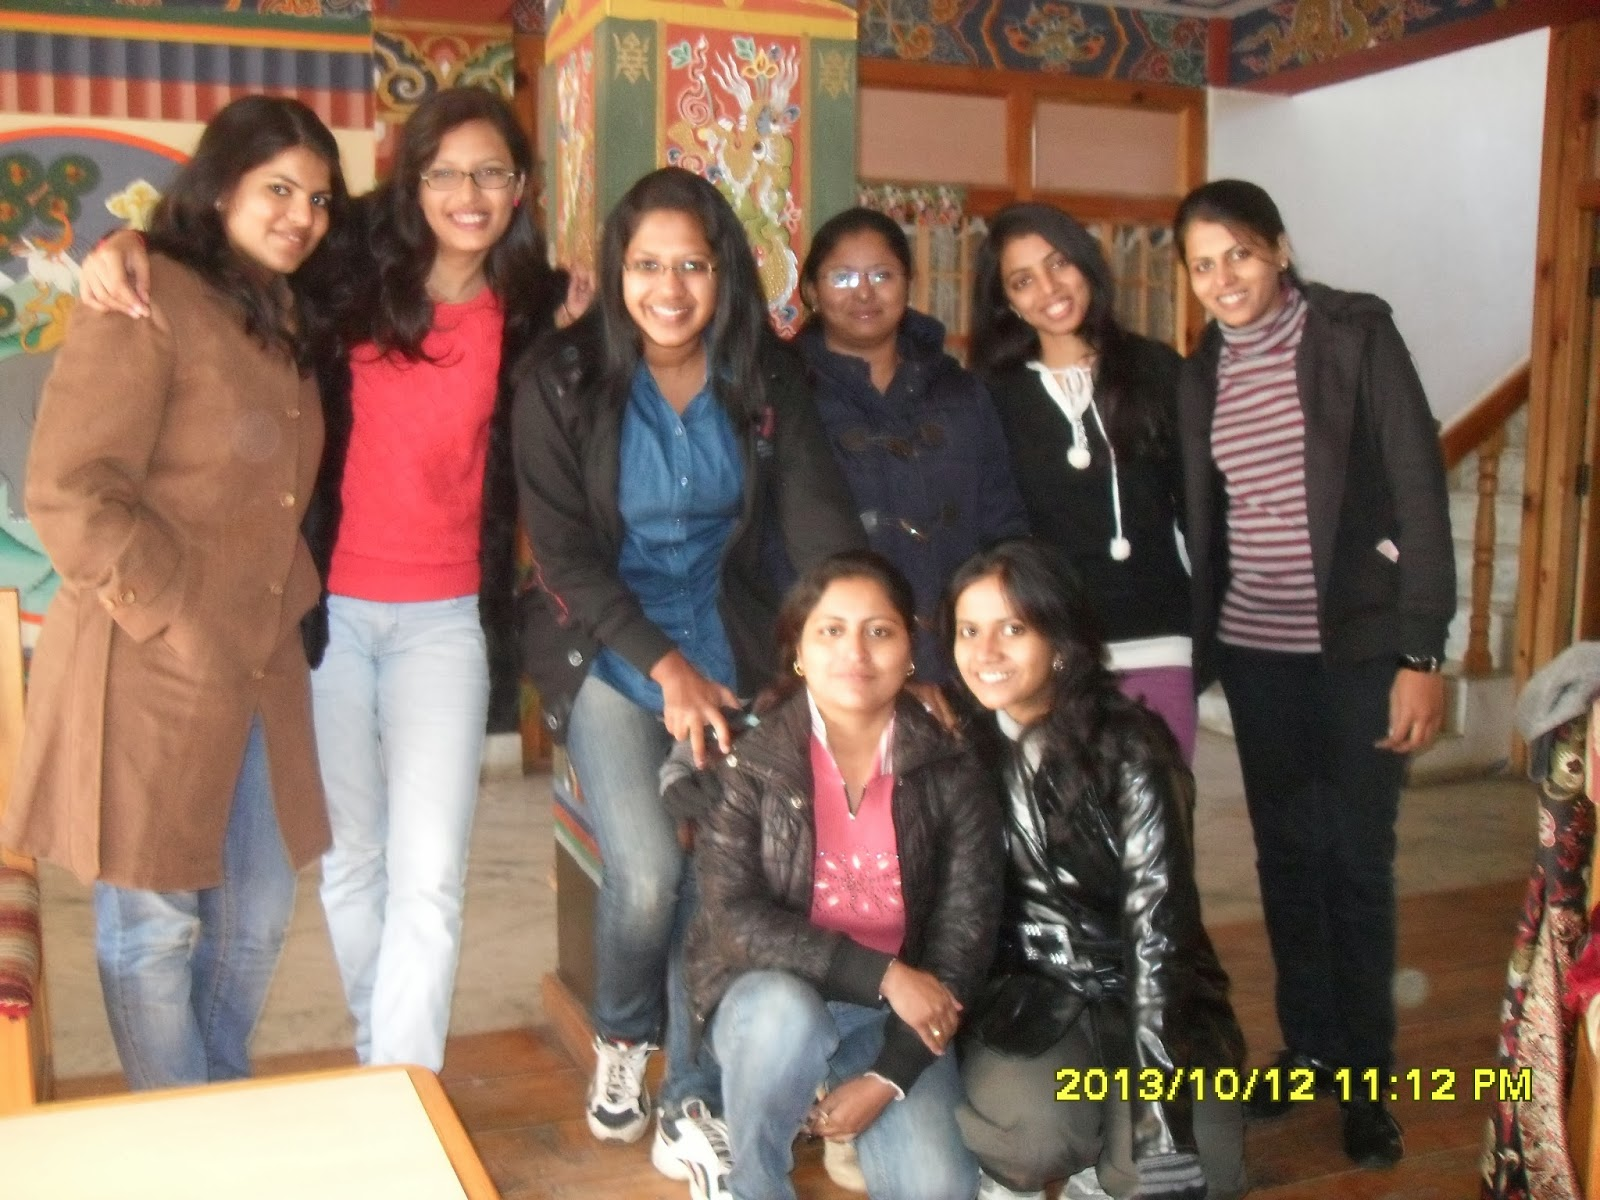 Memoirs of an all-girls trip to Bhutan - the land of happiness